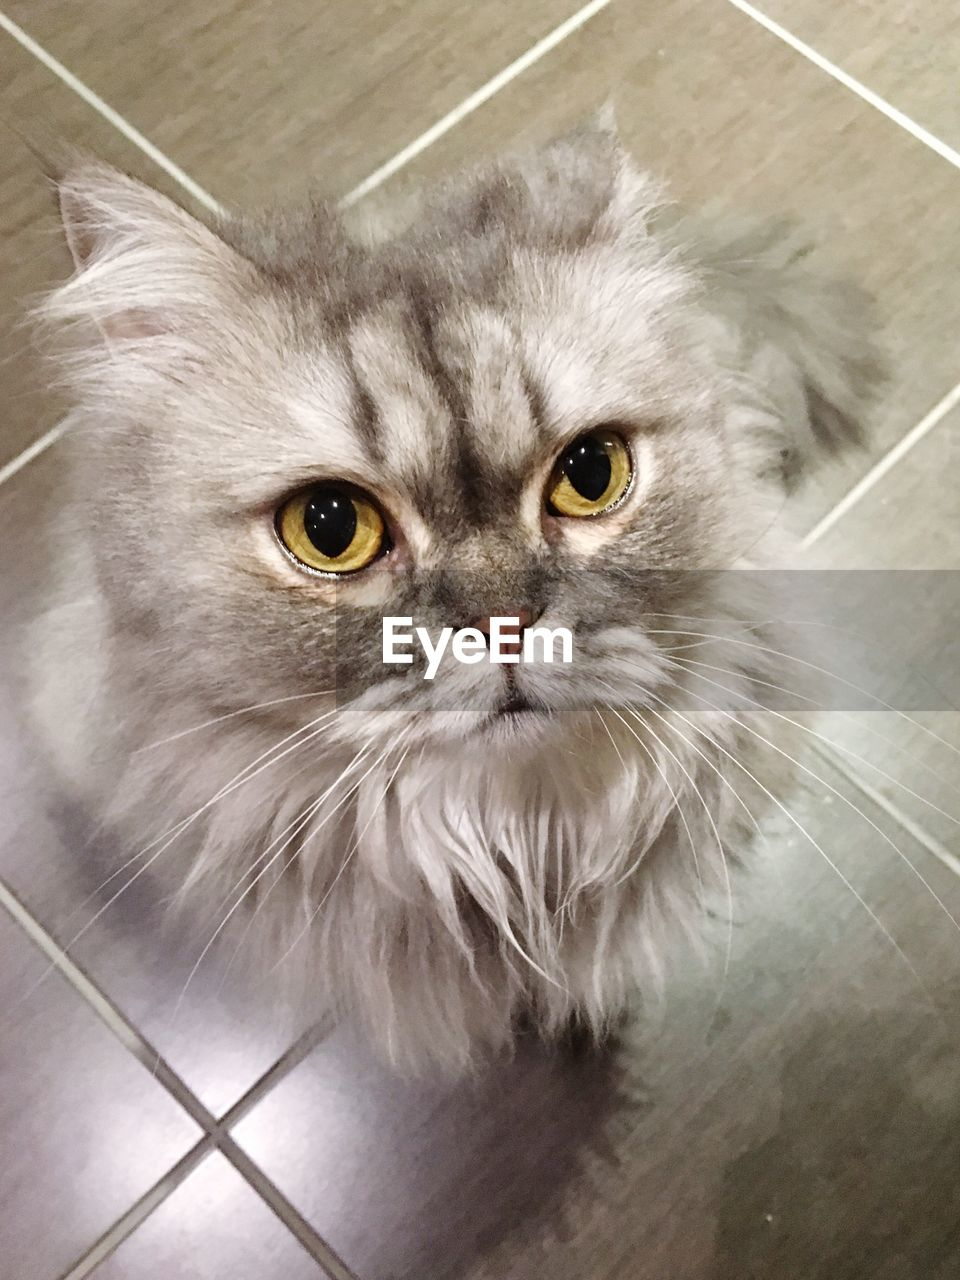 cat, domestic, pets, domestic cat, domestic animals, mammal, feline, portrait, looking at camera, vertebrate, one animal, indoors, high angle view, flooring, no people, whisker, animal body part, persian cat, maine coon cat, animal eye